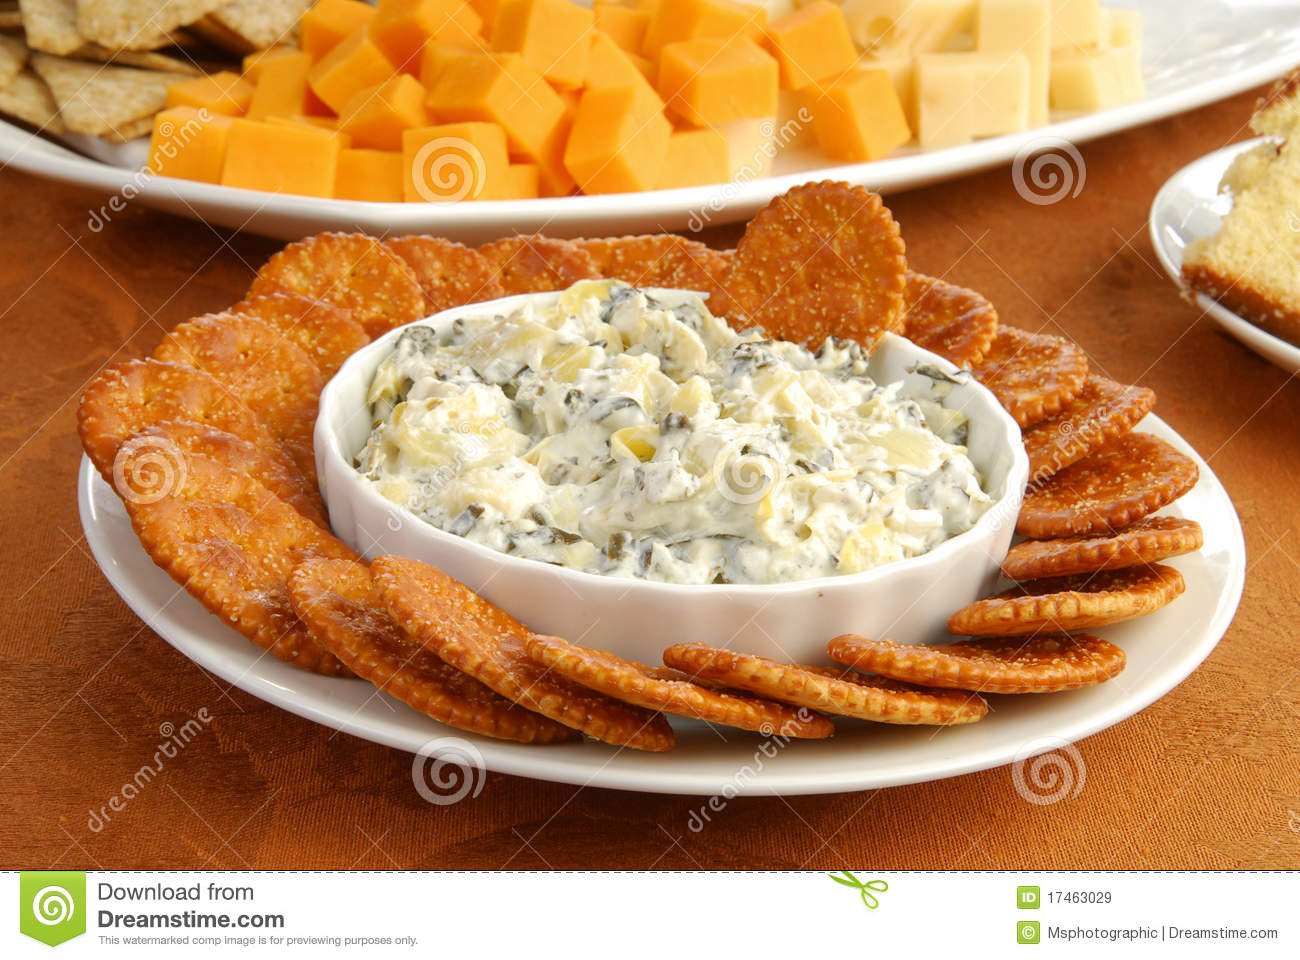 Parmesan cheese dip with spinach and artichokes.